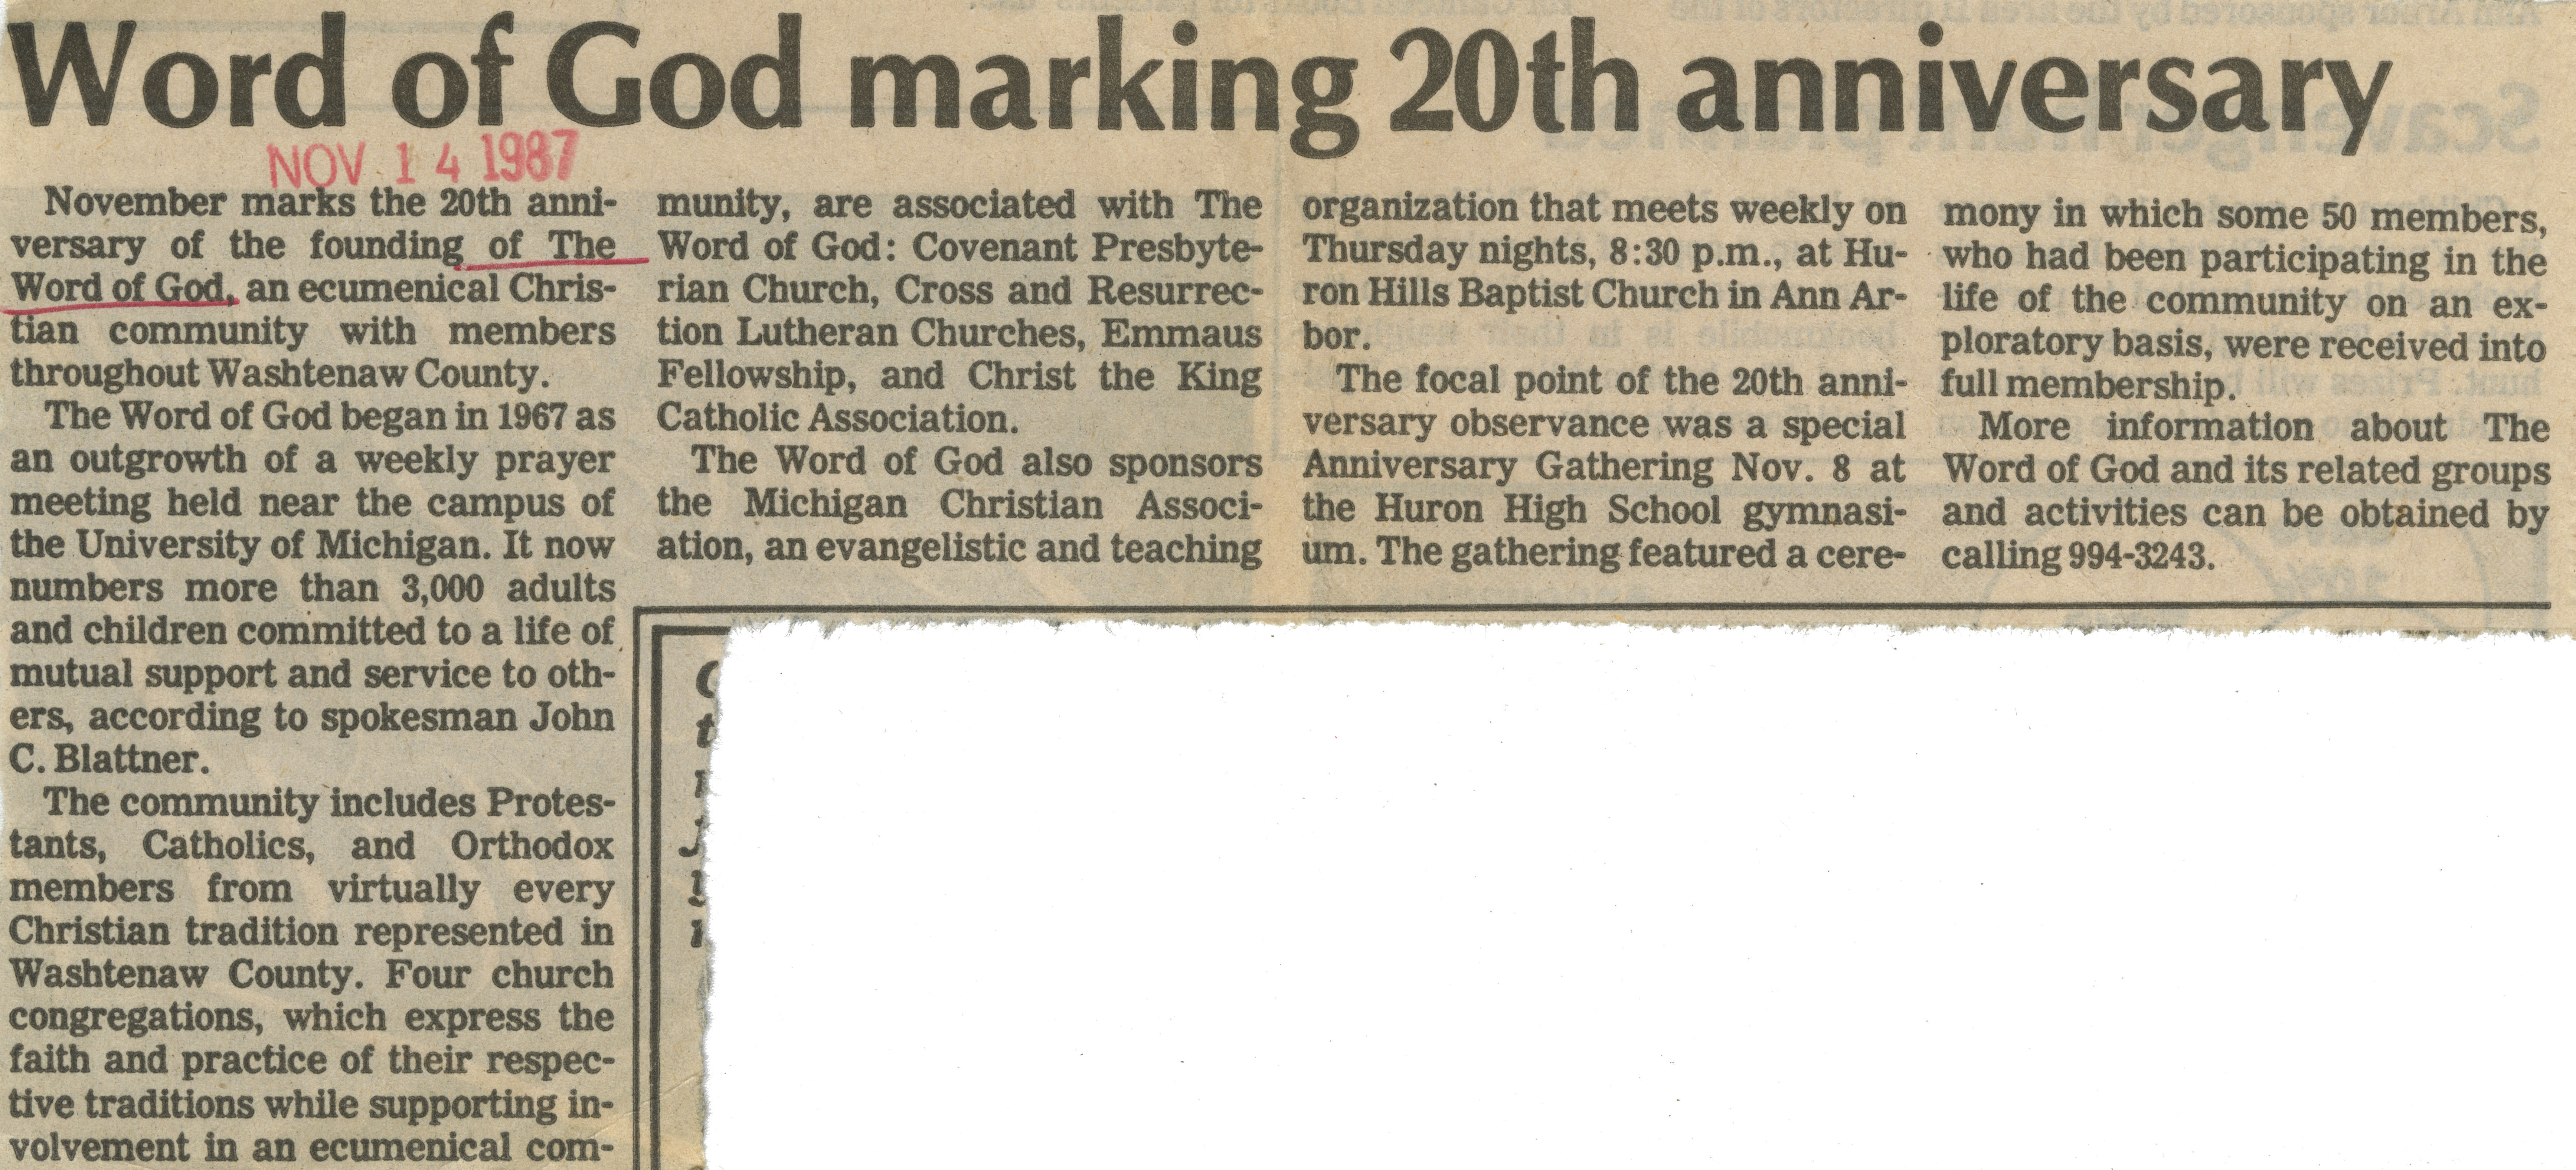 Word Of God Marking 20th Anniversary image